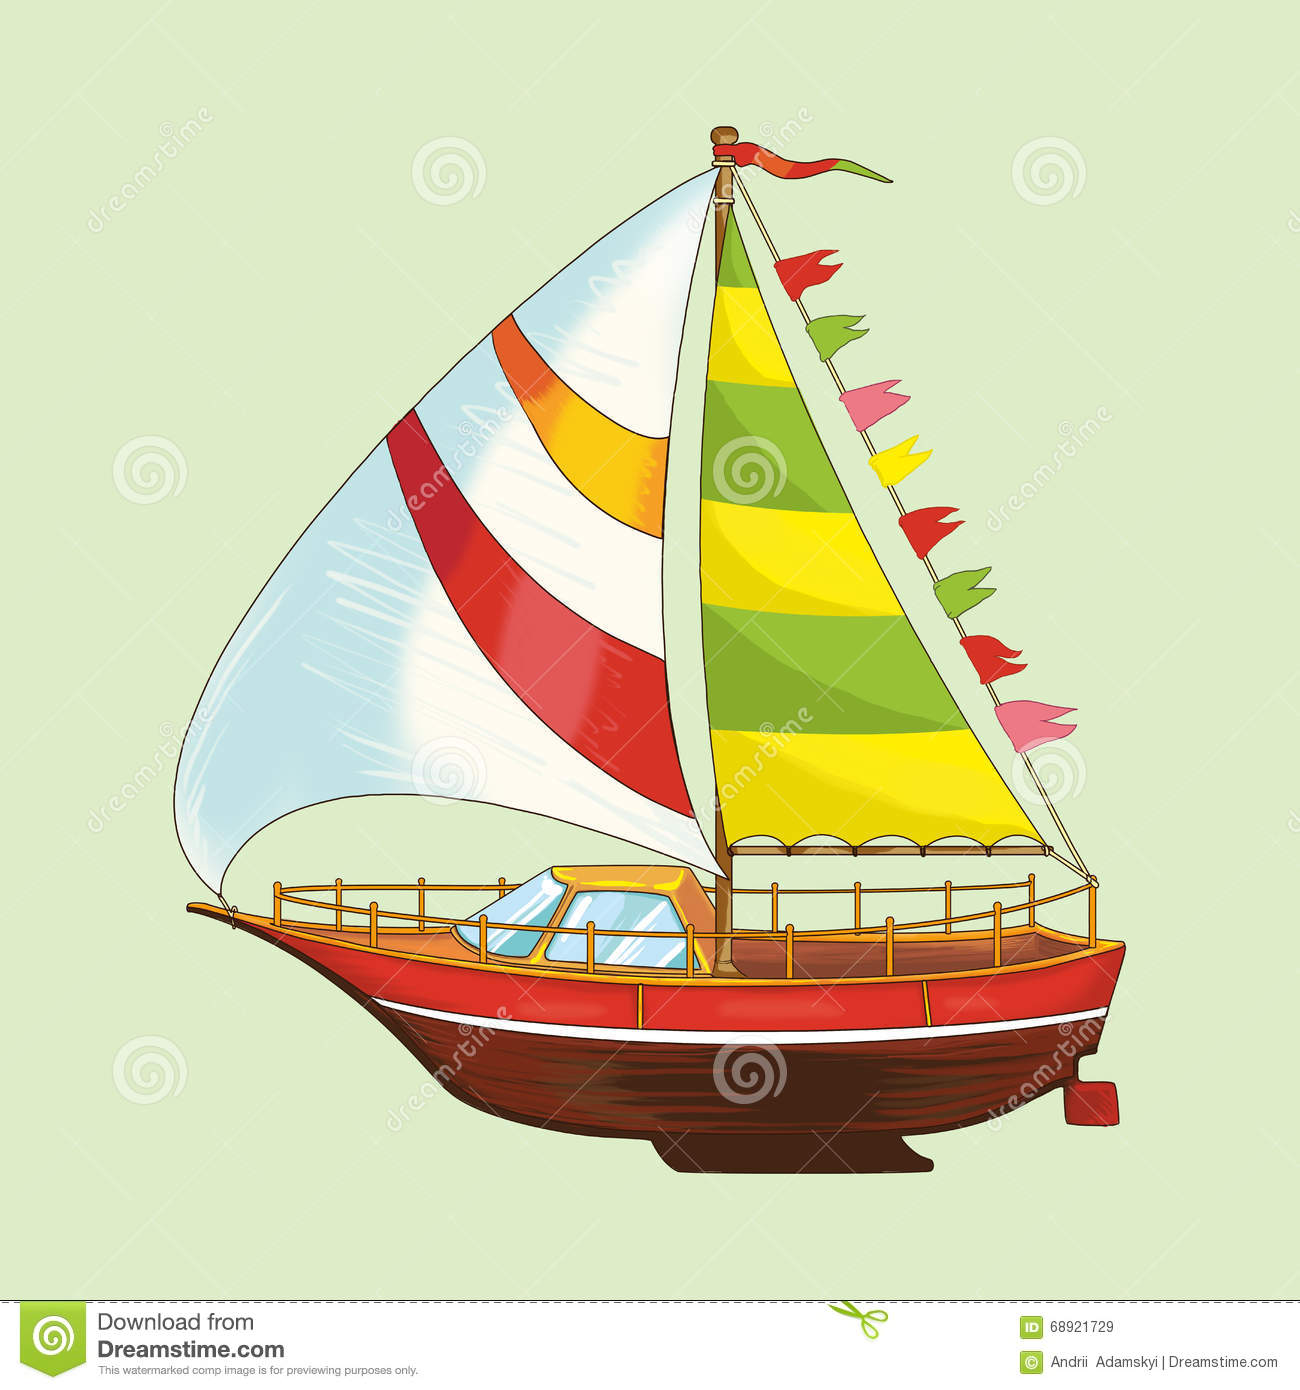 Sailing Yacht Of A Set Of Children's Toys. Stock ...